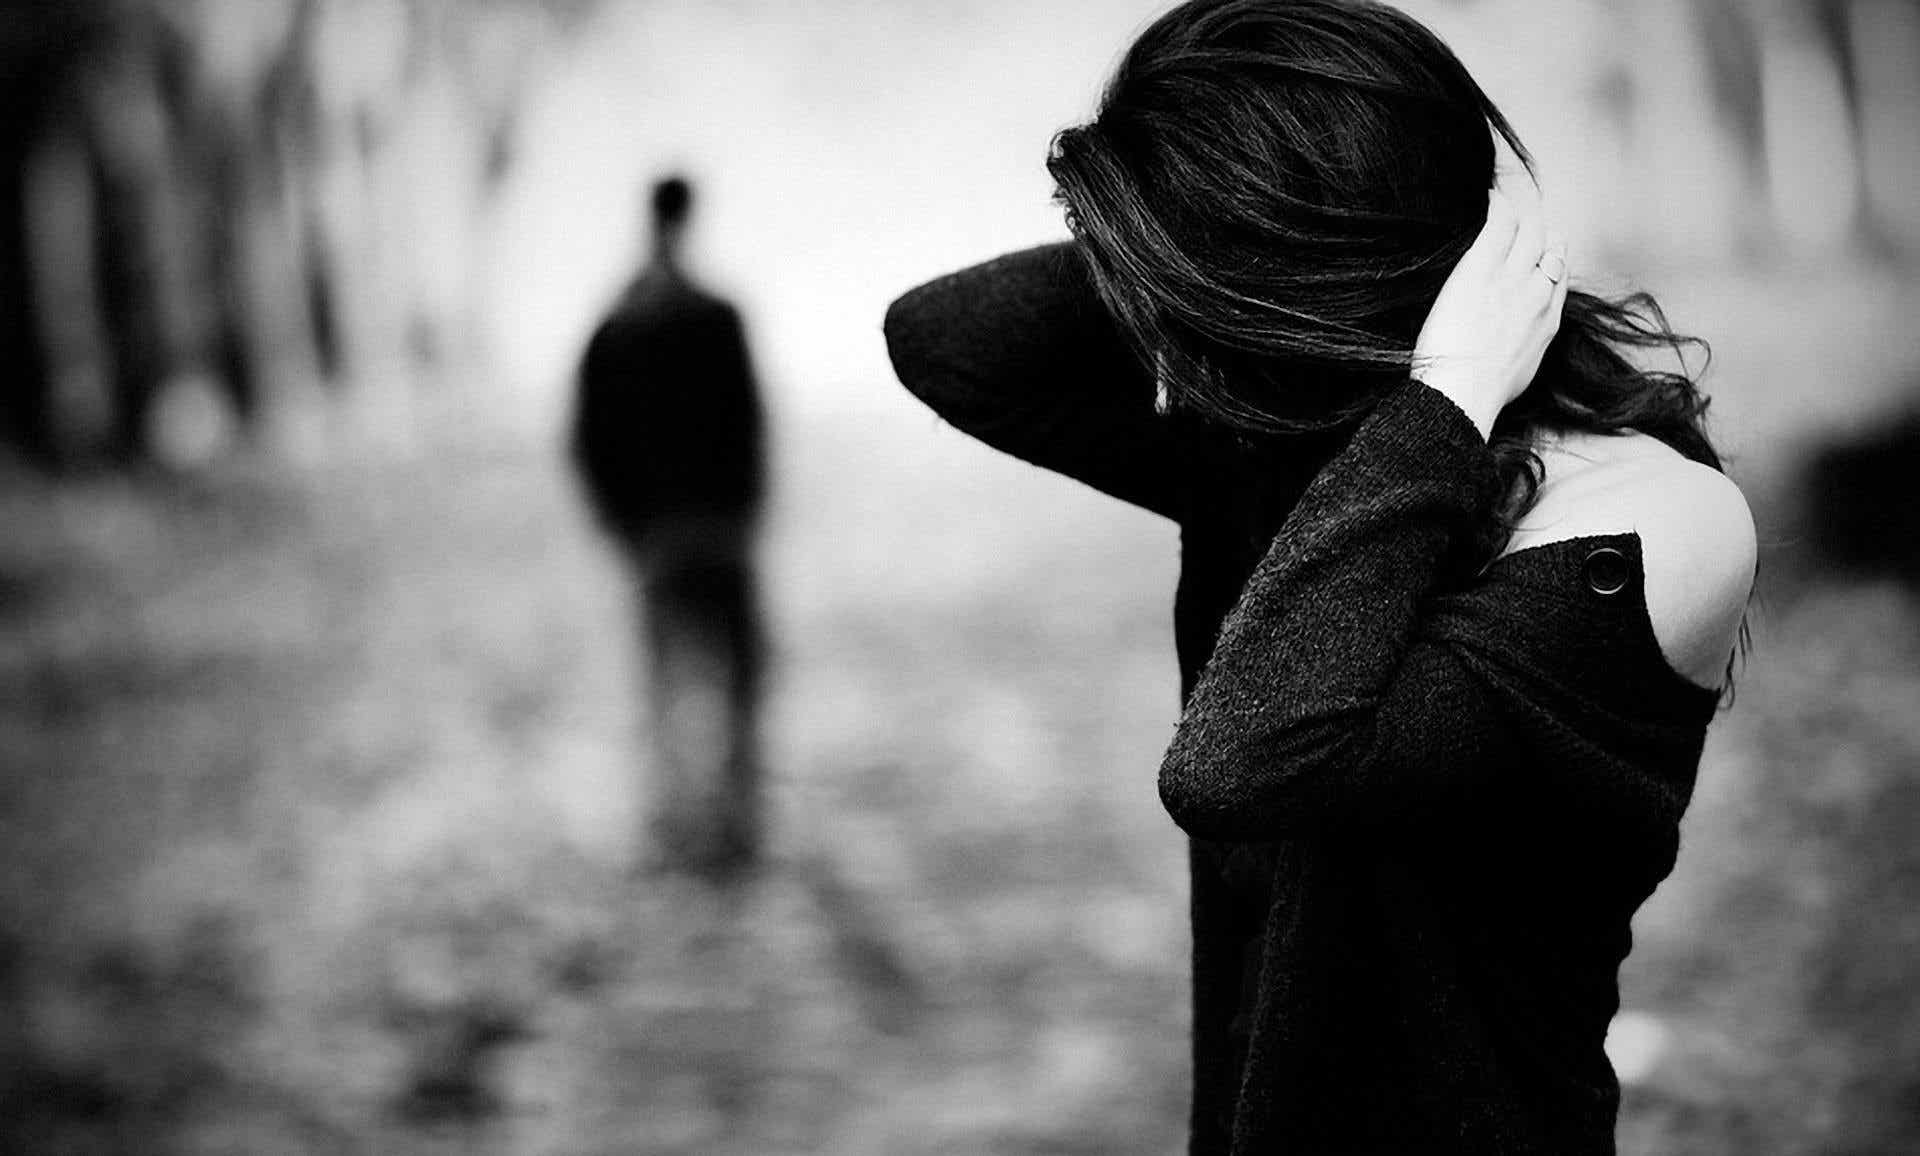 A black and white photo of a man walking away from a woman.